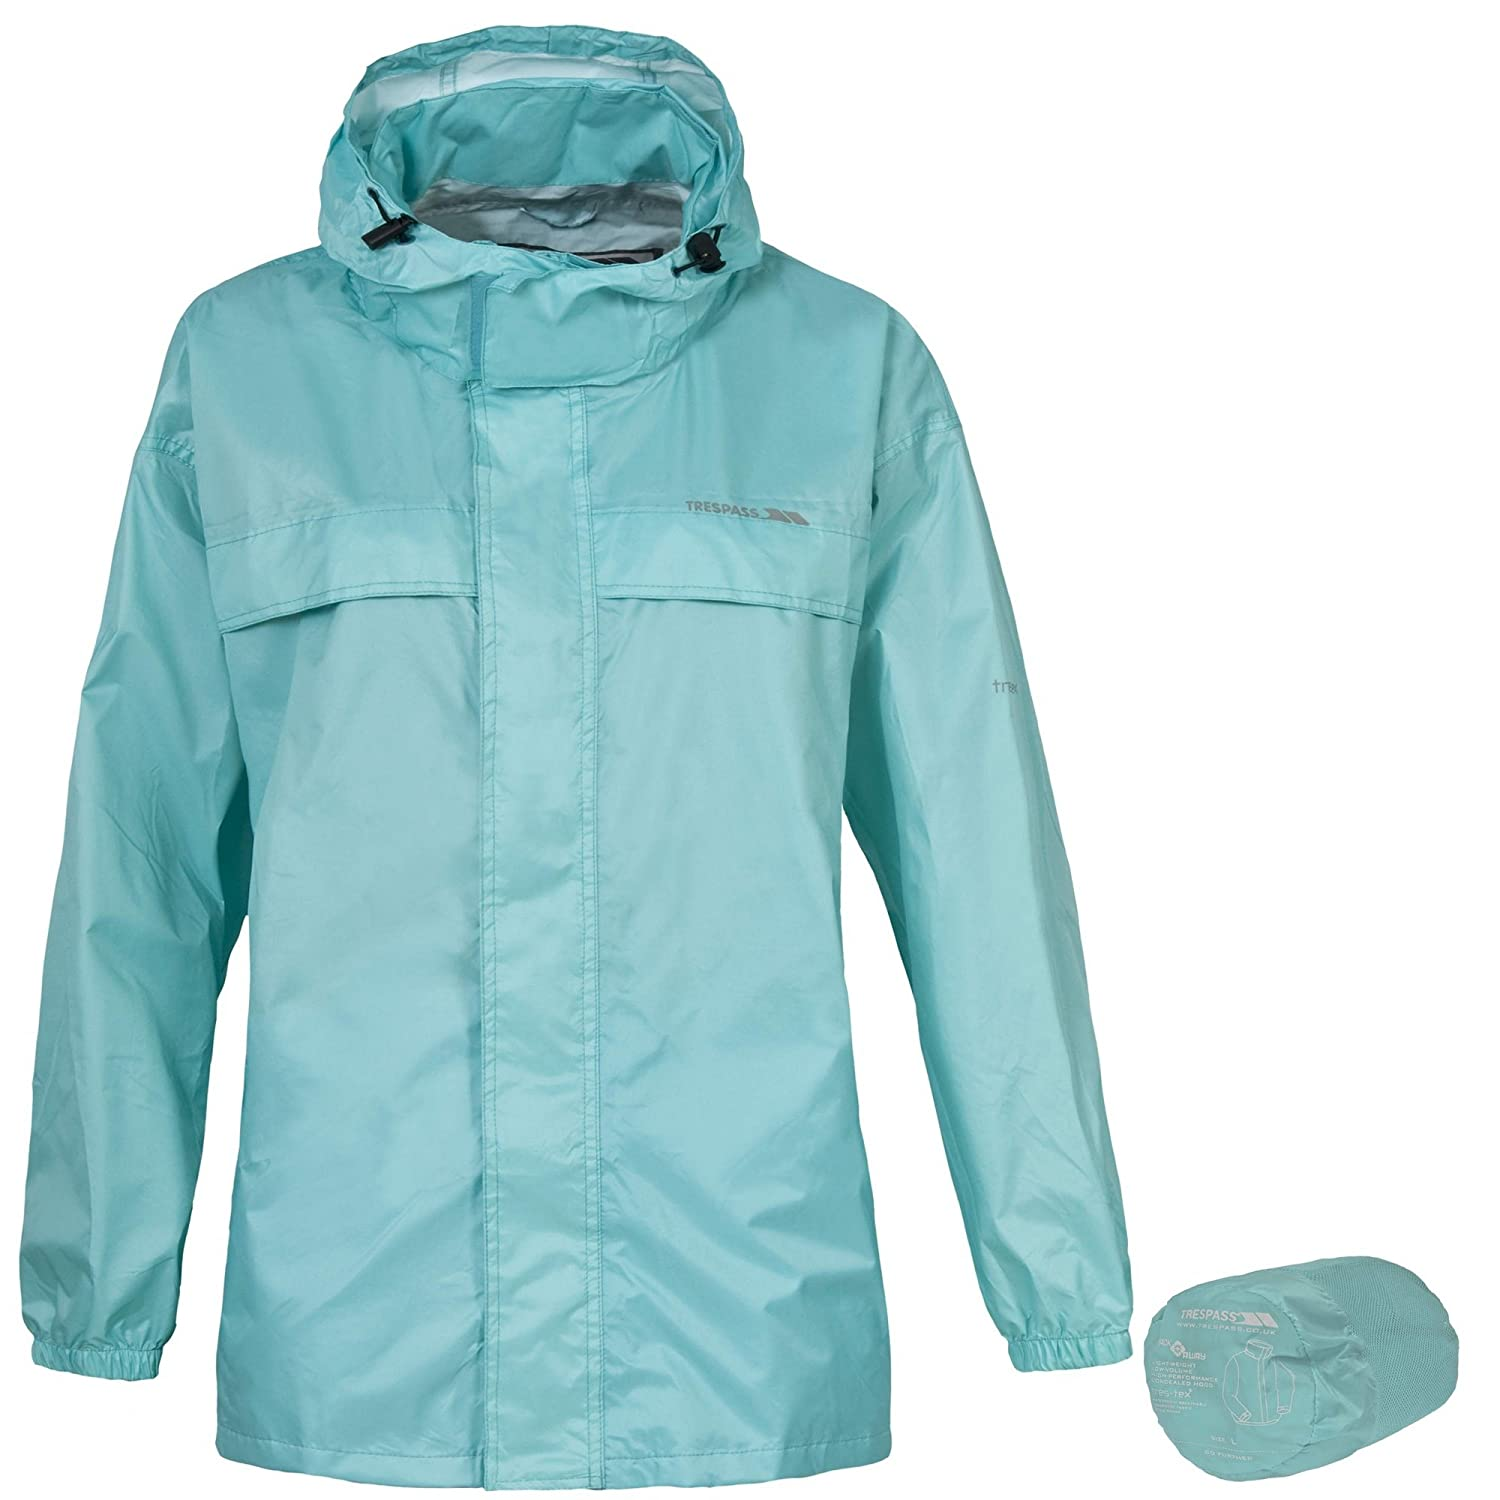 Trespass womens purple packaway jacket